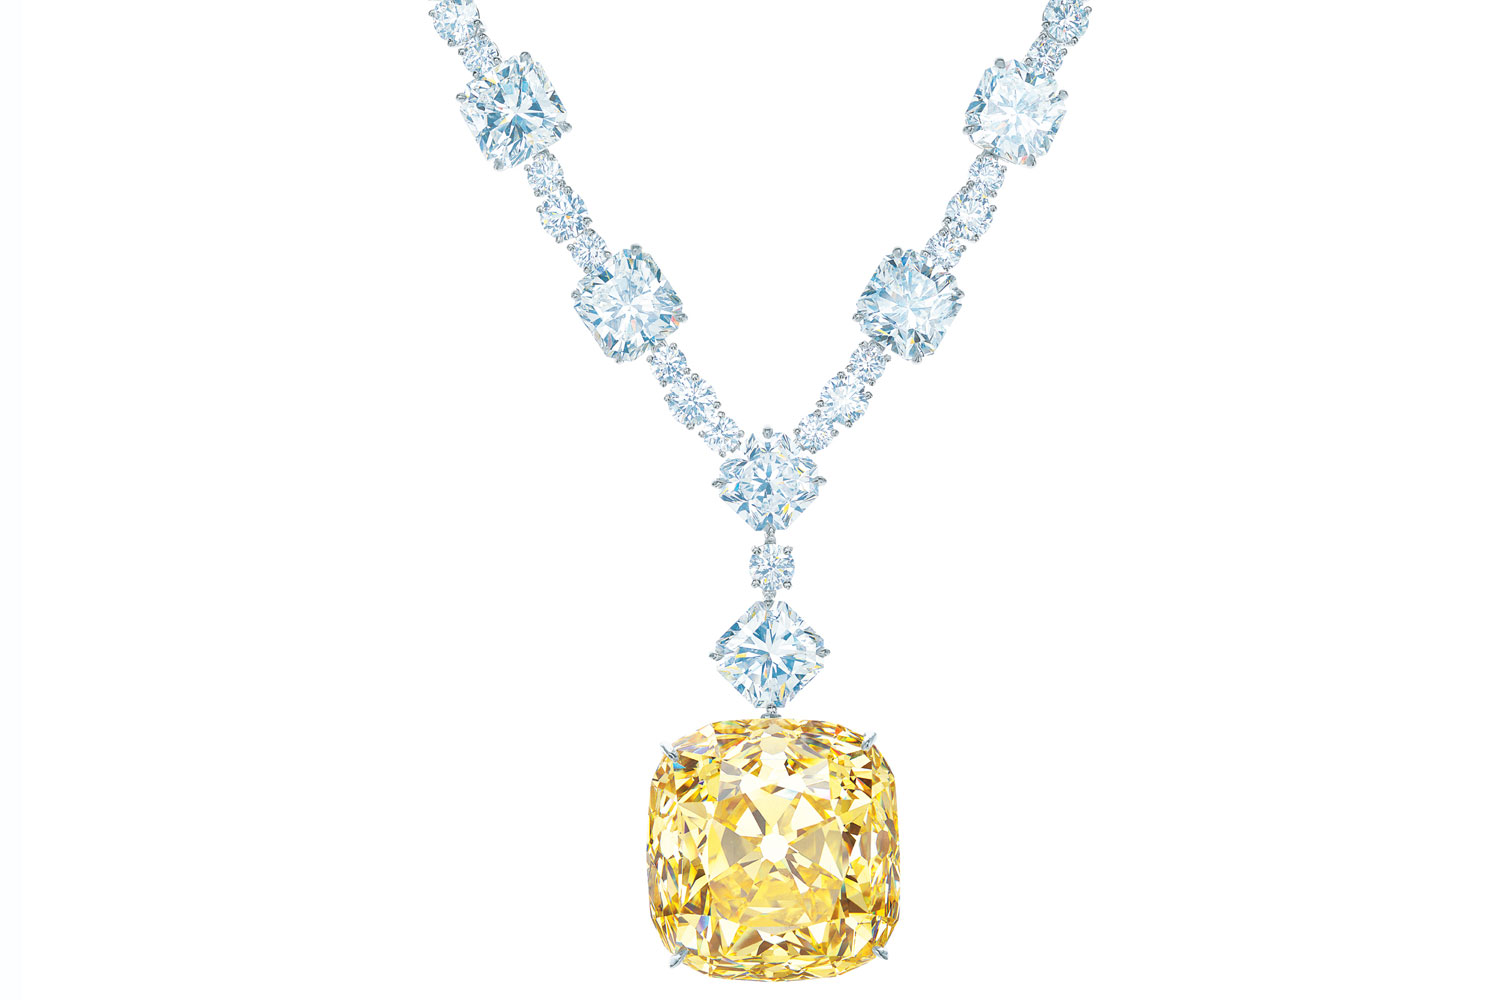 Tiffany-&-Co-diamond-necklace-oscars-lady-gaga